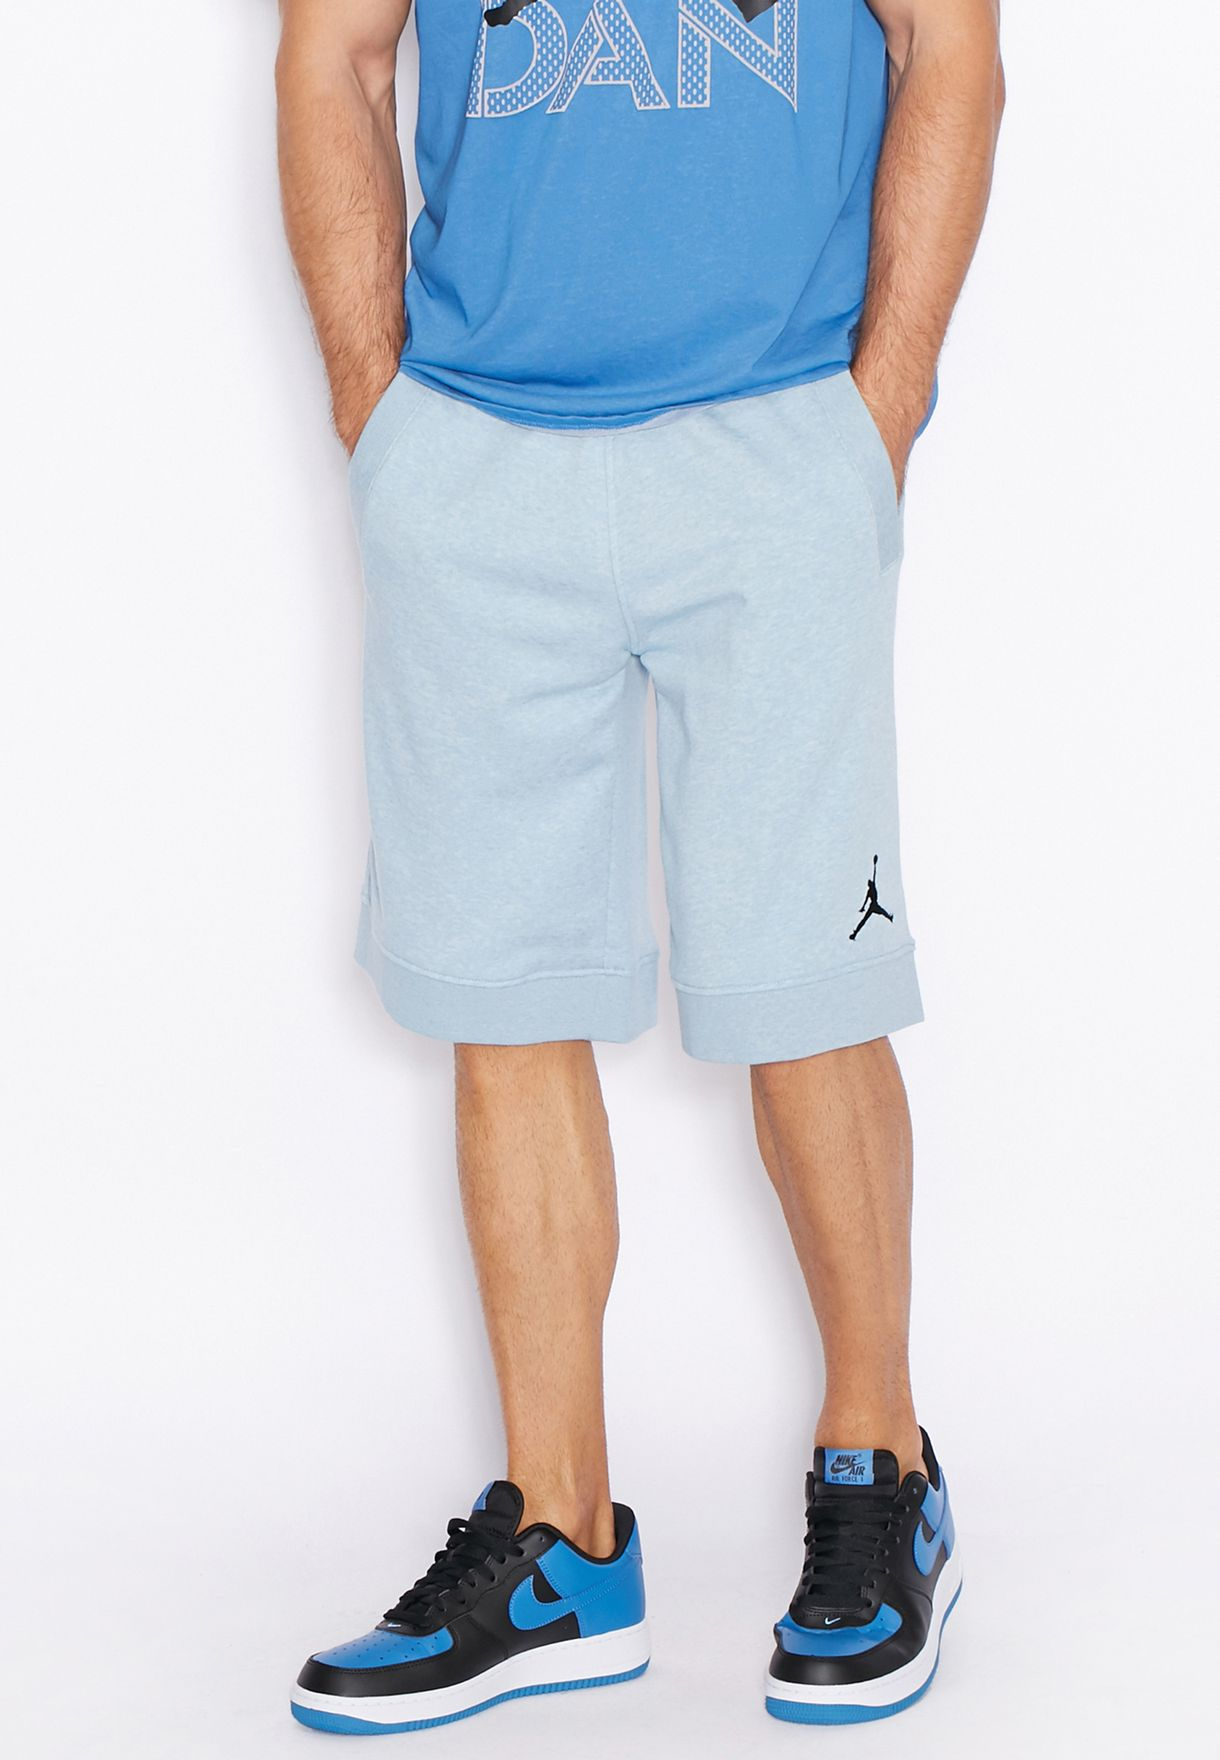 5dbeb49bda74 Shop Nike blue Jordan Shorts 642453-470 for Men in UAE - NI727AT40GYT